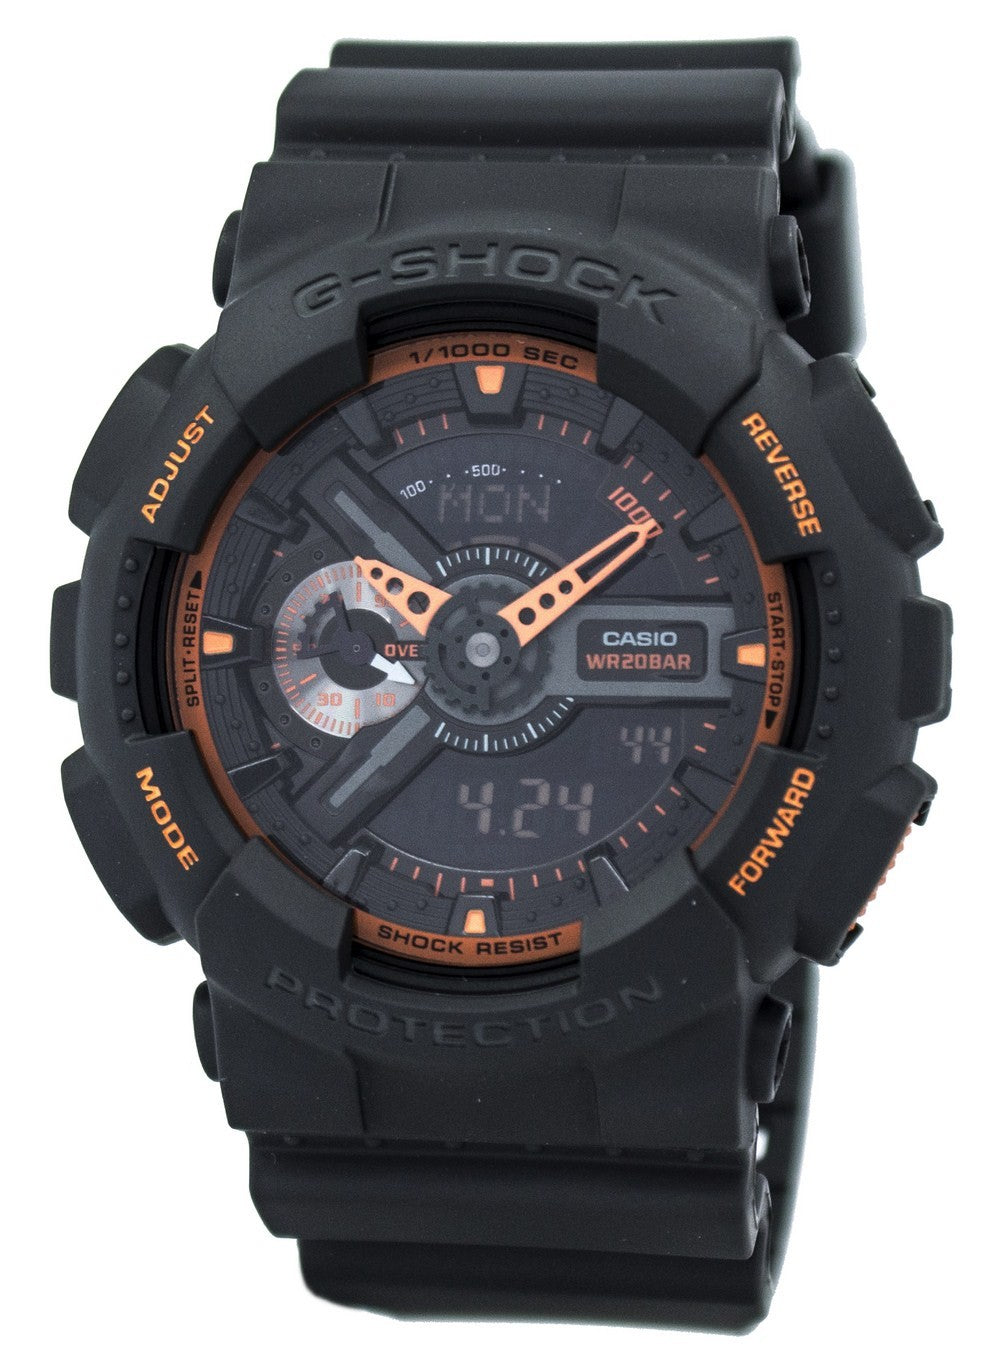 Casio G-Shock Analog-Digital GA-110TS-1A4 GA110TS-1A4 Men's Watch